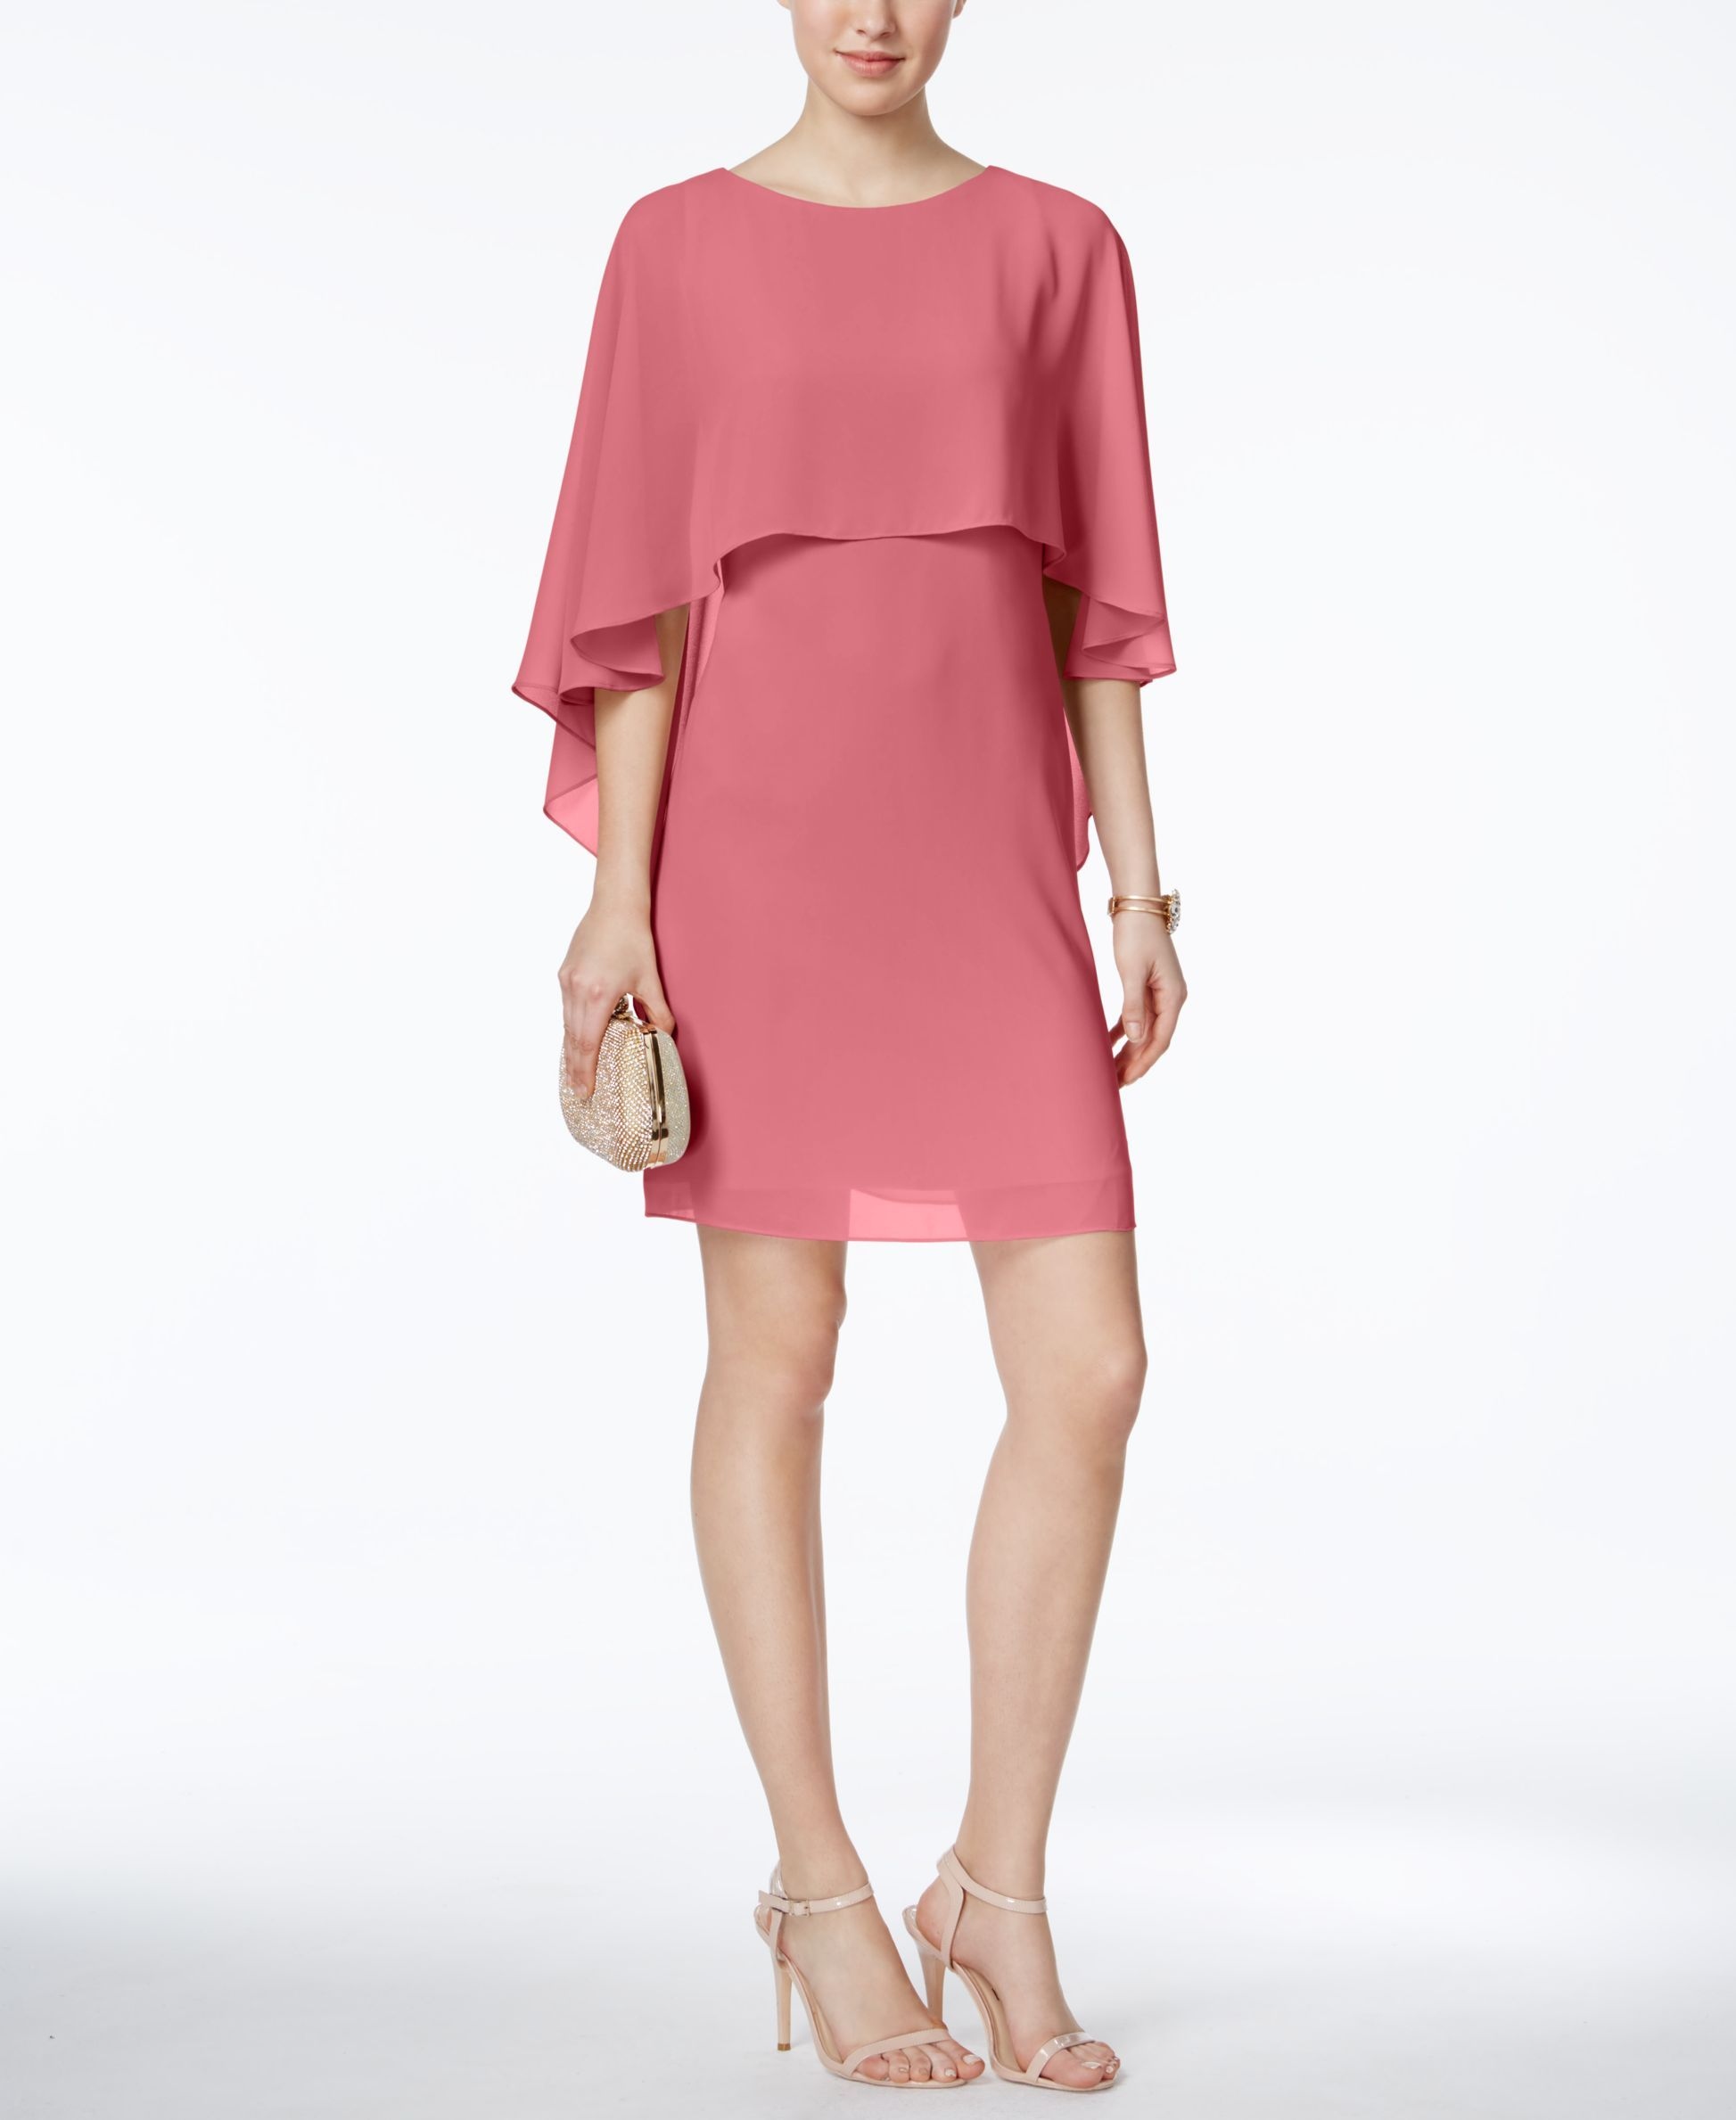 Shift dresses for wedding guests  Vince Camuto Capelet Shift Dress  Products  Pinterest  Capelet